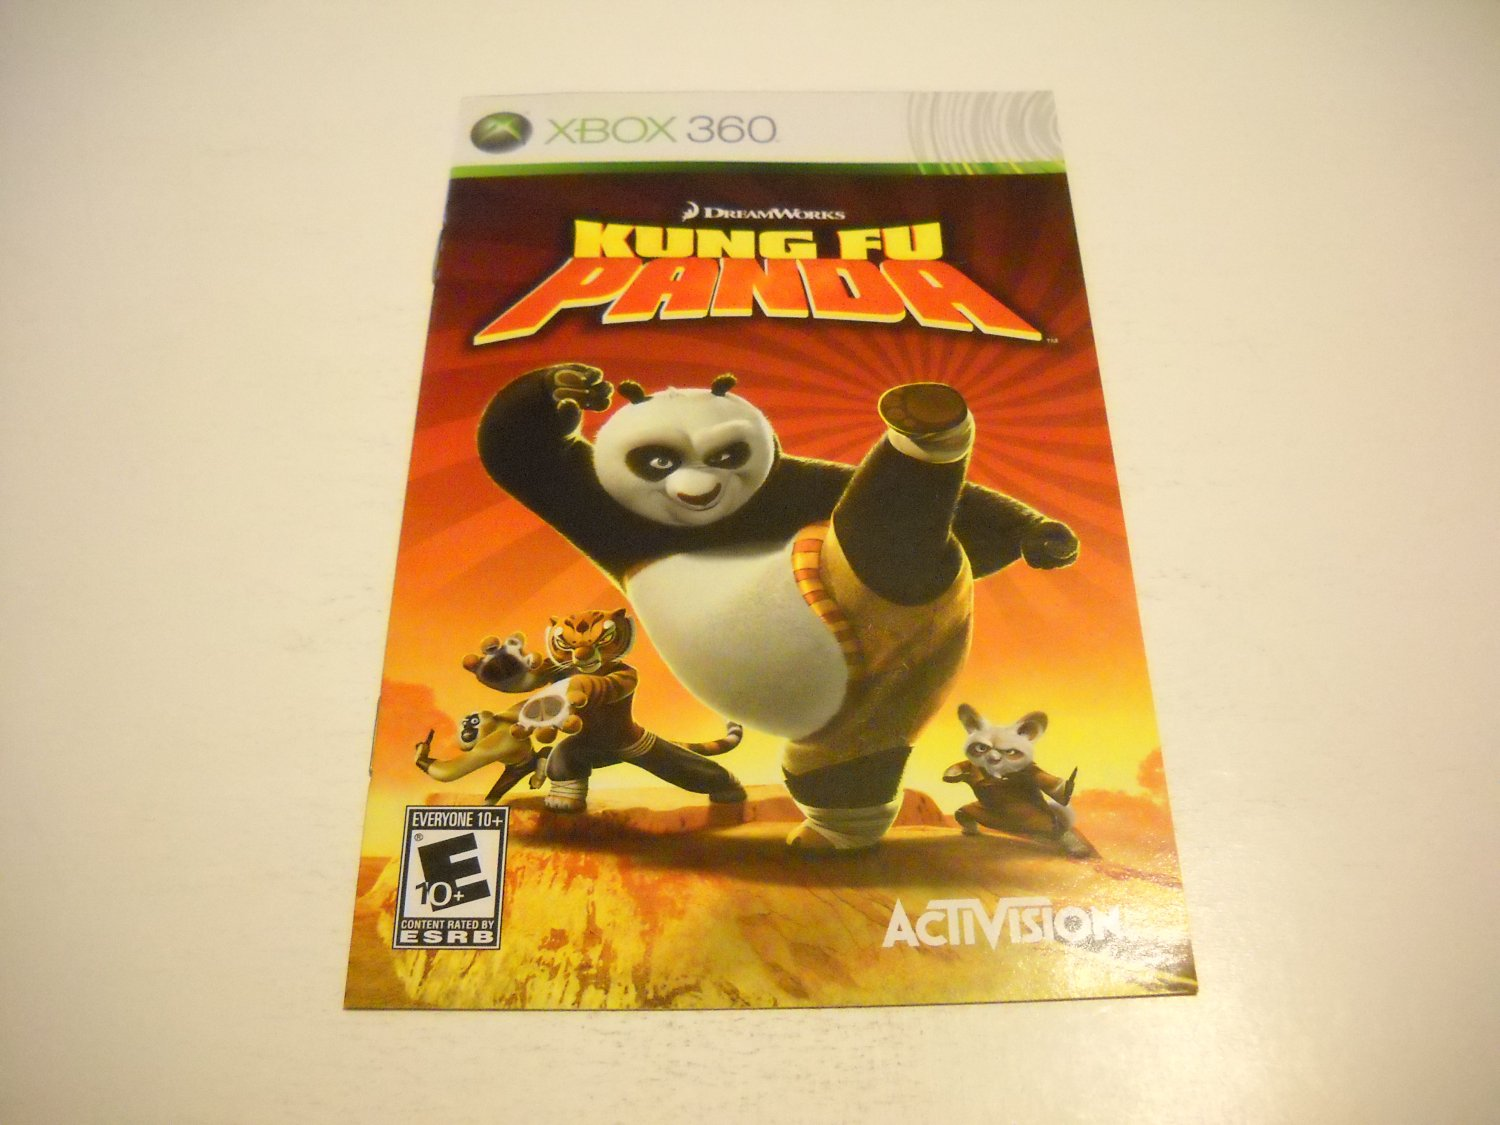 Manual ONLY ~  for Kung Fu Panda   - Xbox 360 Instruction Booklet